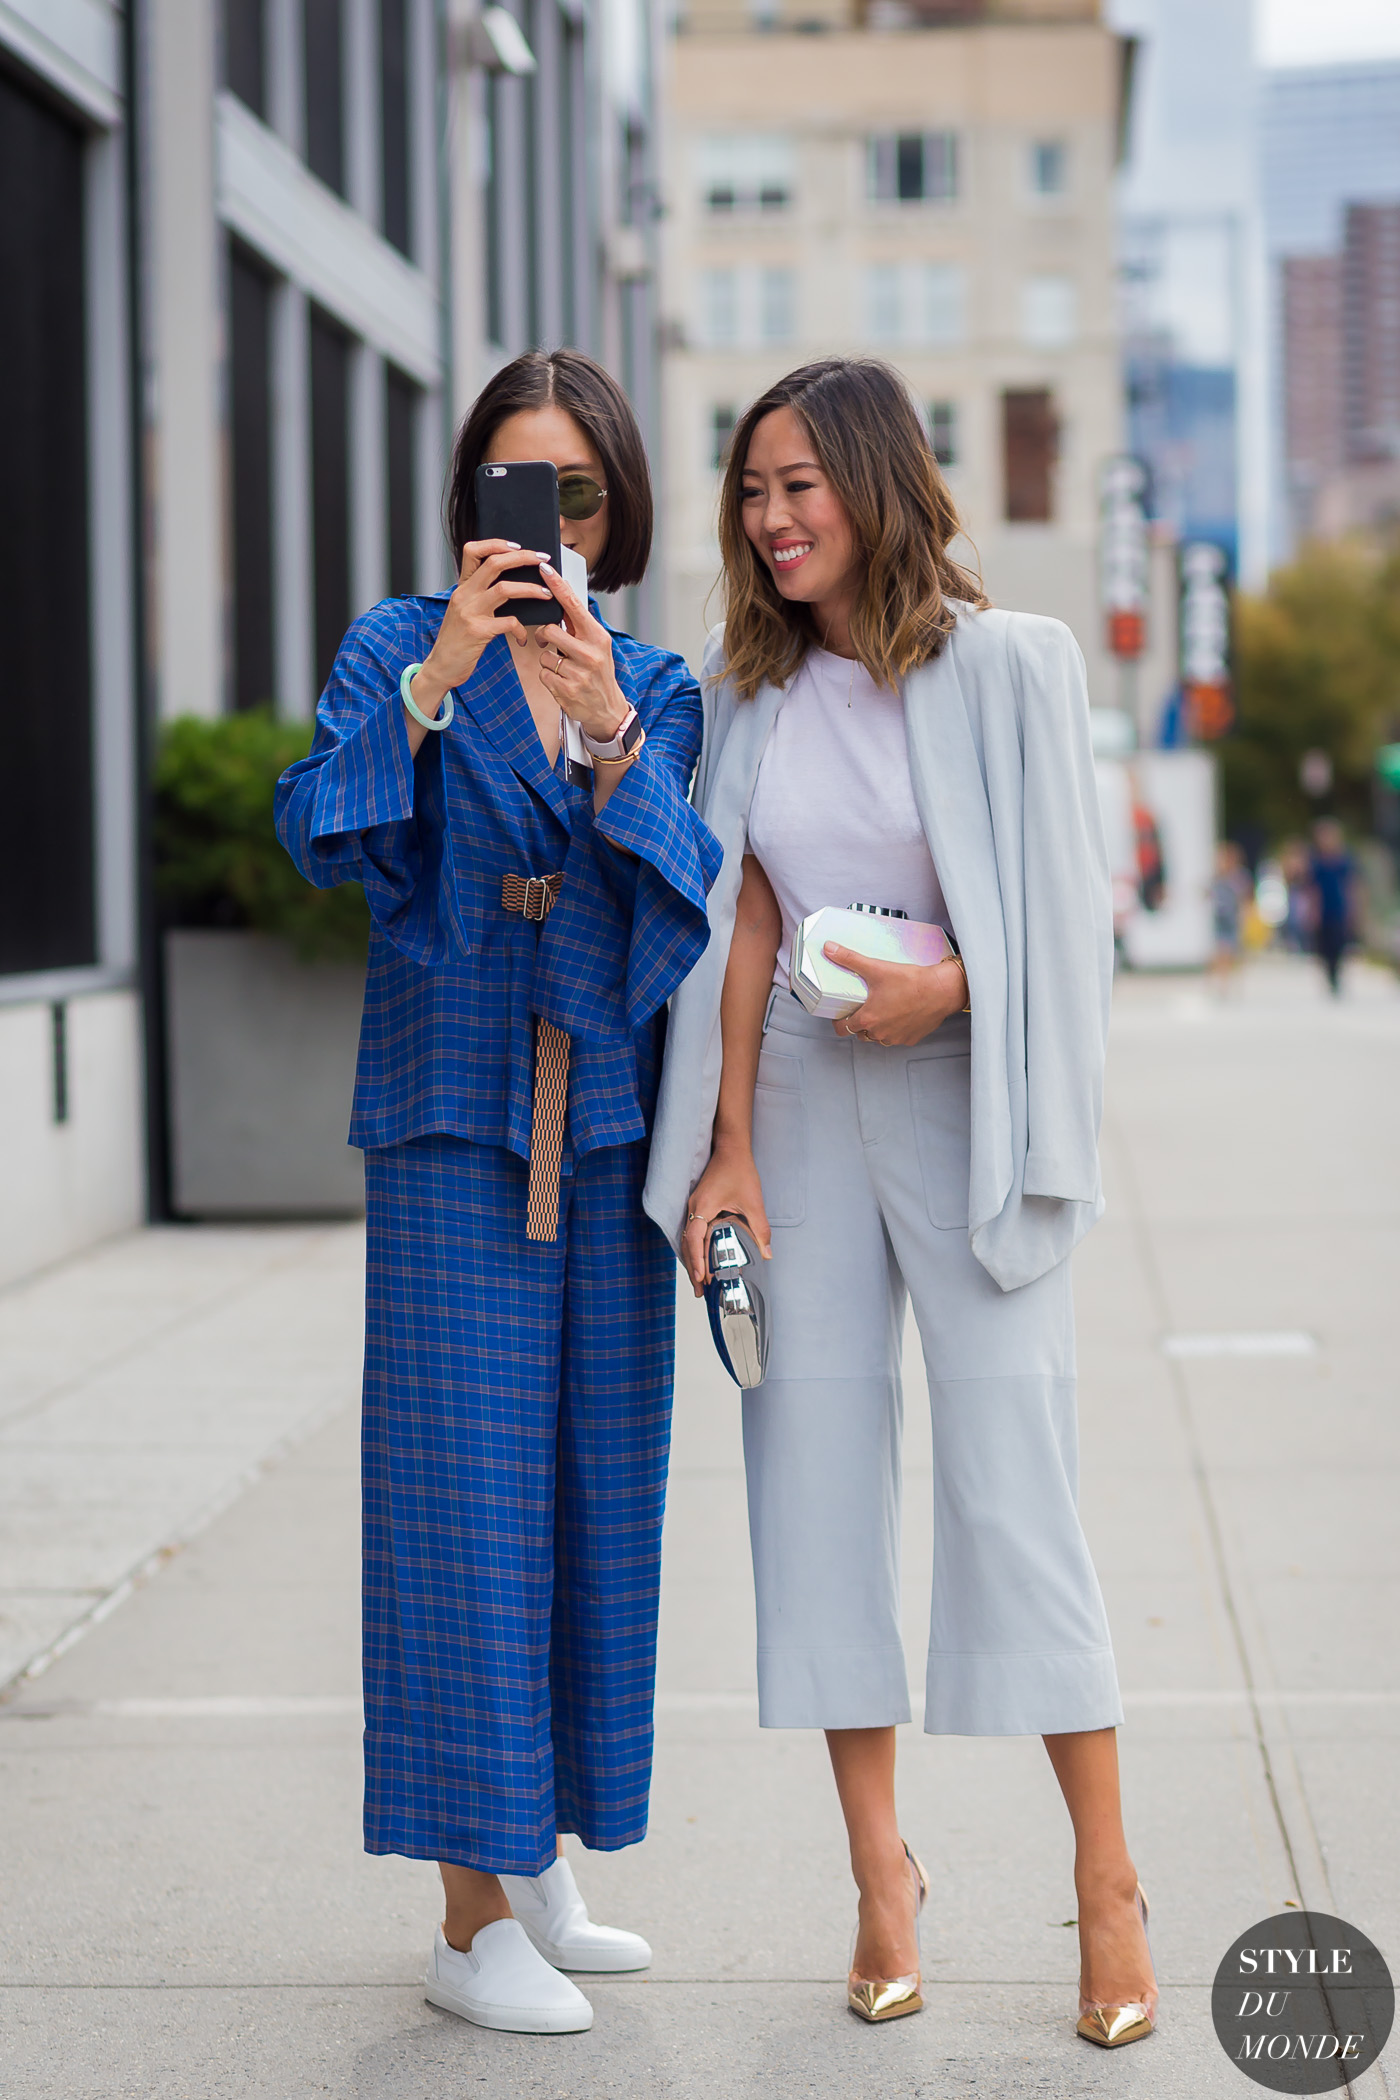 New York Fashion Week Ss 2016 Street Style Eva Chen And Aimee Song Style Du Monde Street